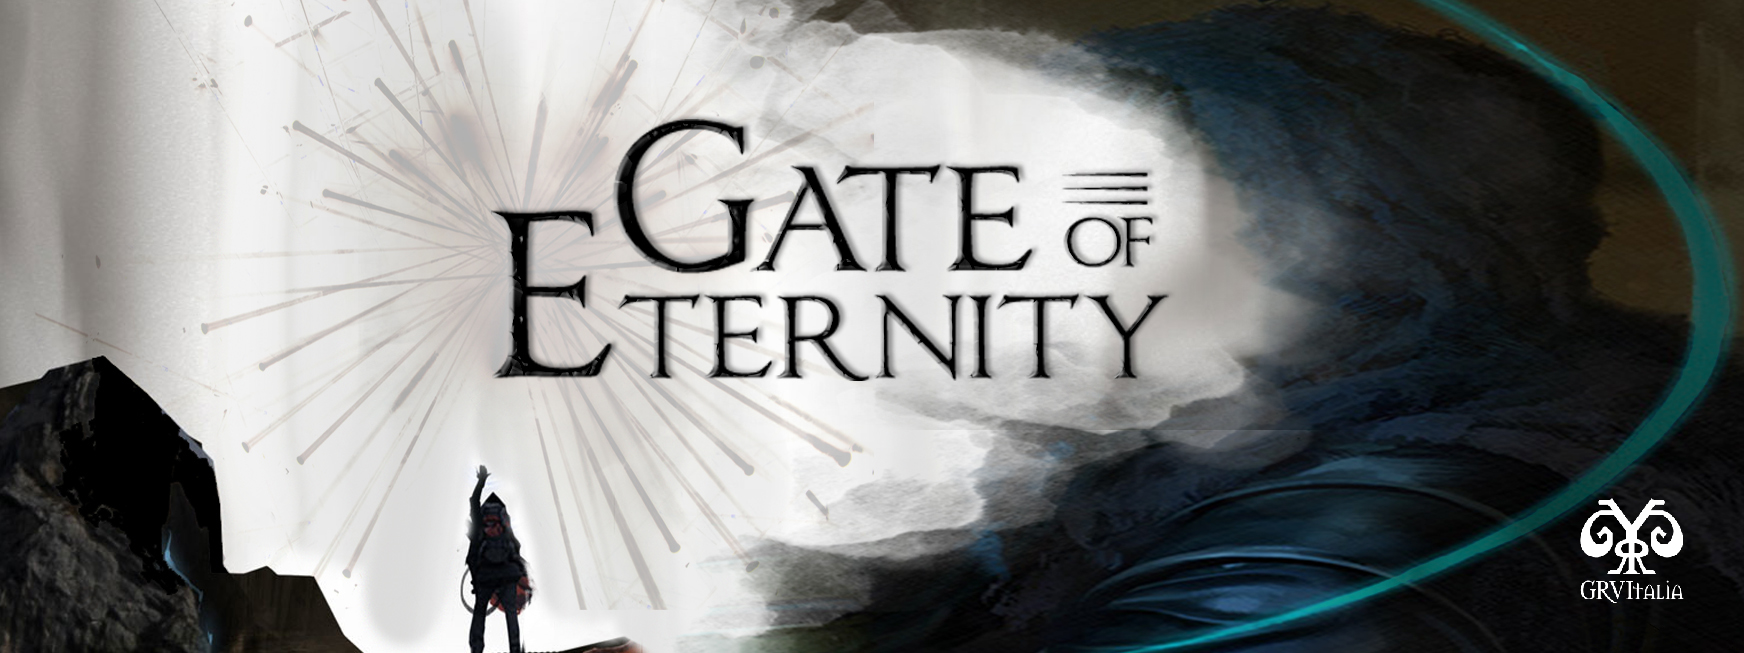 Gate of Eternity: GRV Italia porta 7 giorni di LARP Fantasy in Toscana